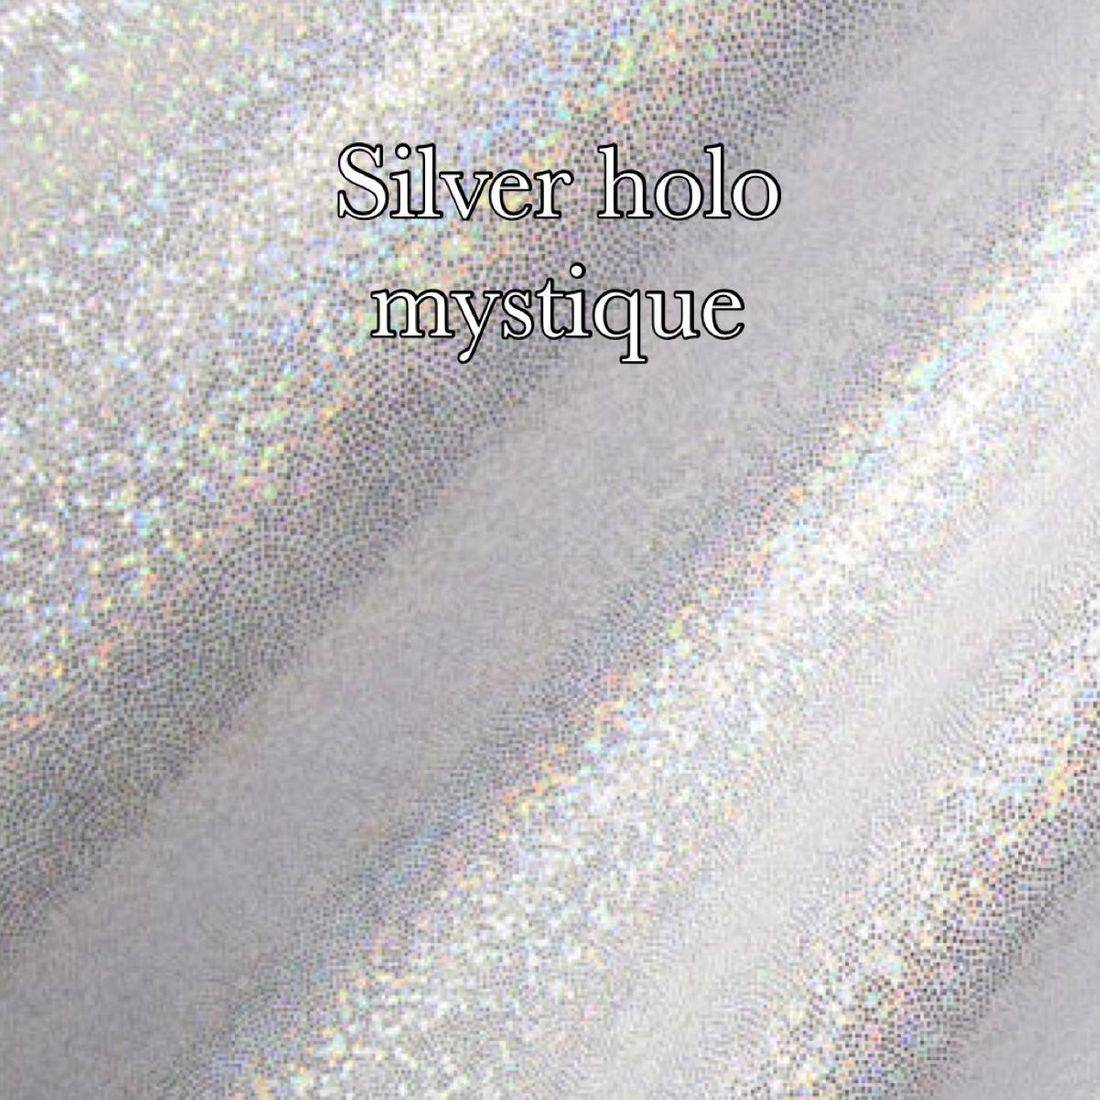 White  holographic mist